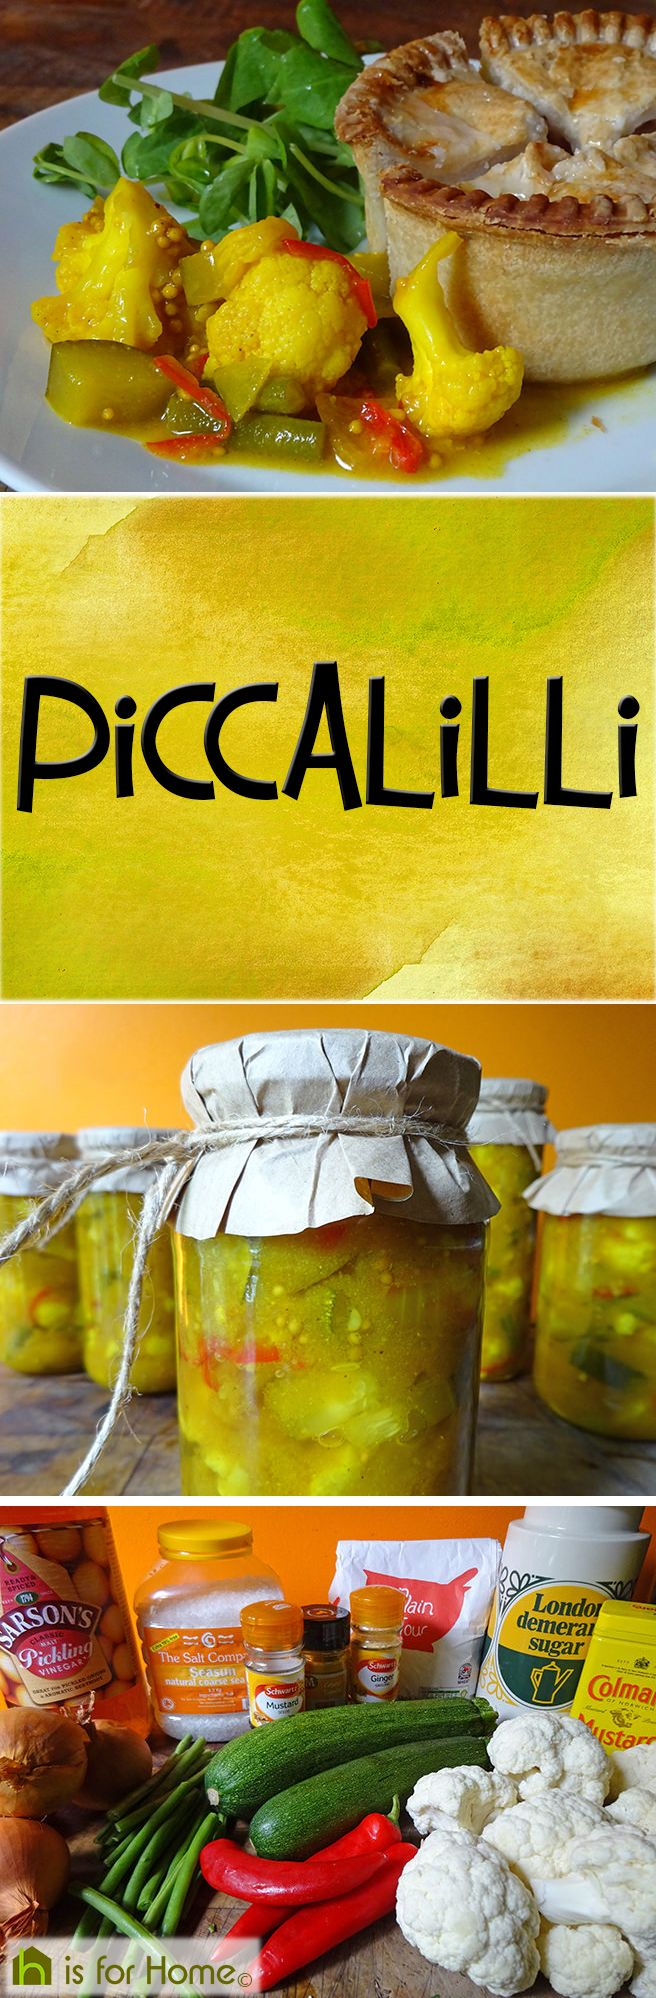 Get the recipe for my home-made piccalilli, an essential accompaniment to #Christmas ham and cheese board #fdbloggers #recipe #preserving #canning